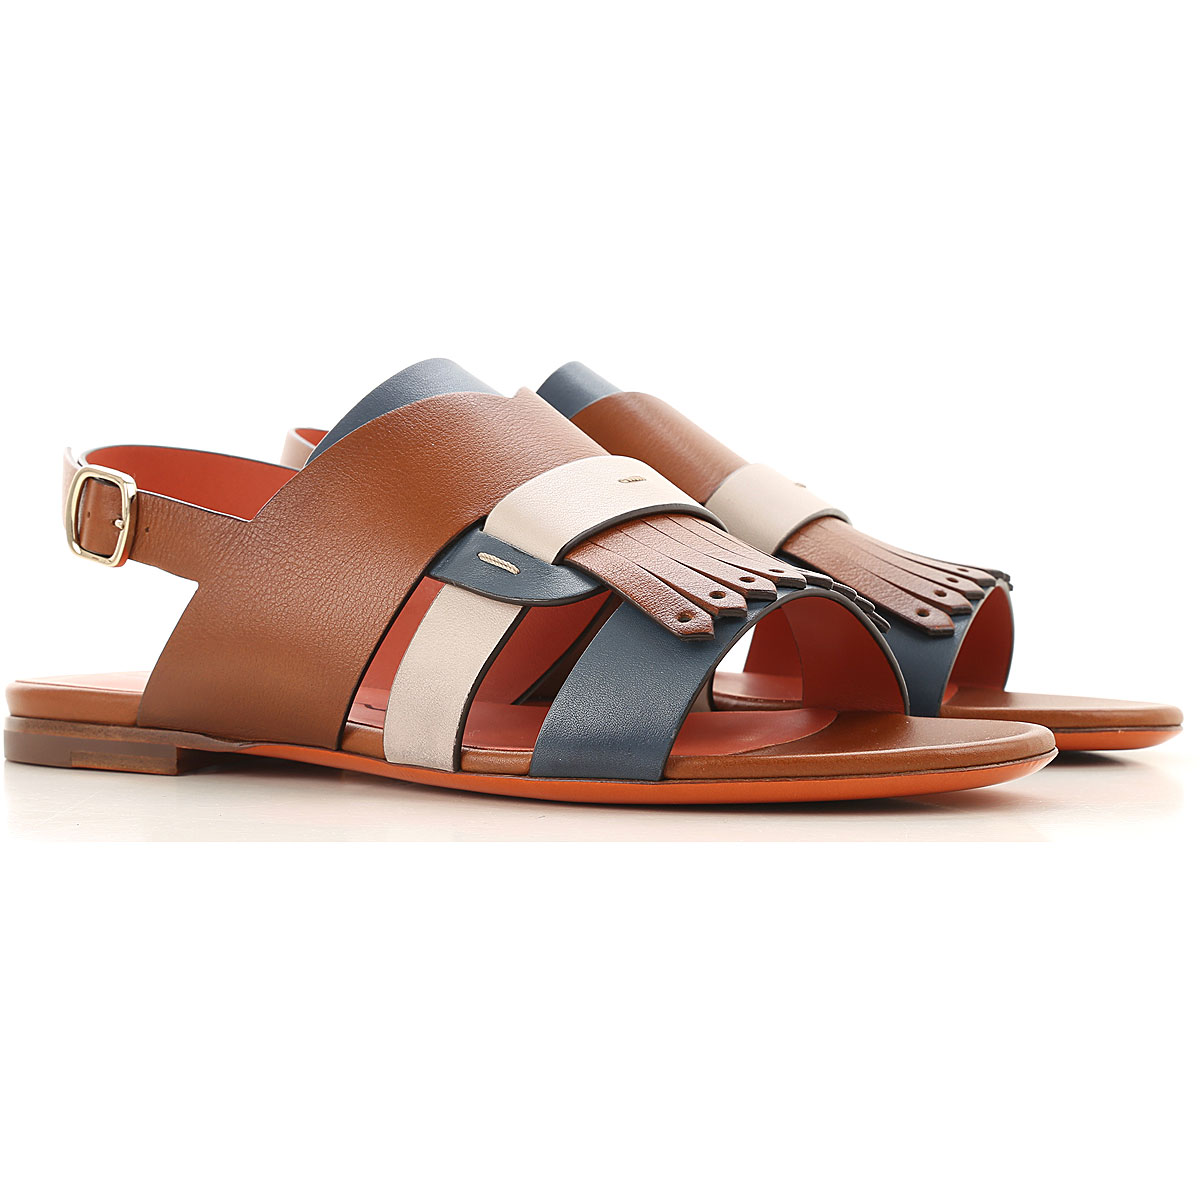 Santoni Sandals for Women On Sale, Leather Brown, Leather, 2019, 10 11 6 7 8